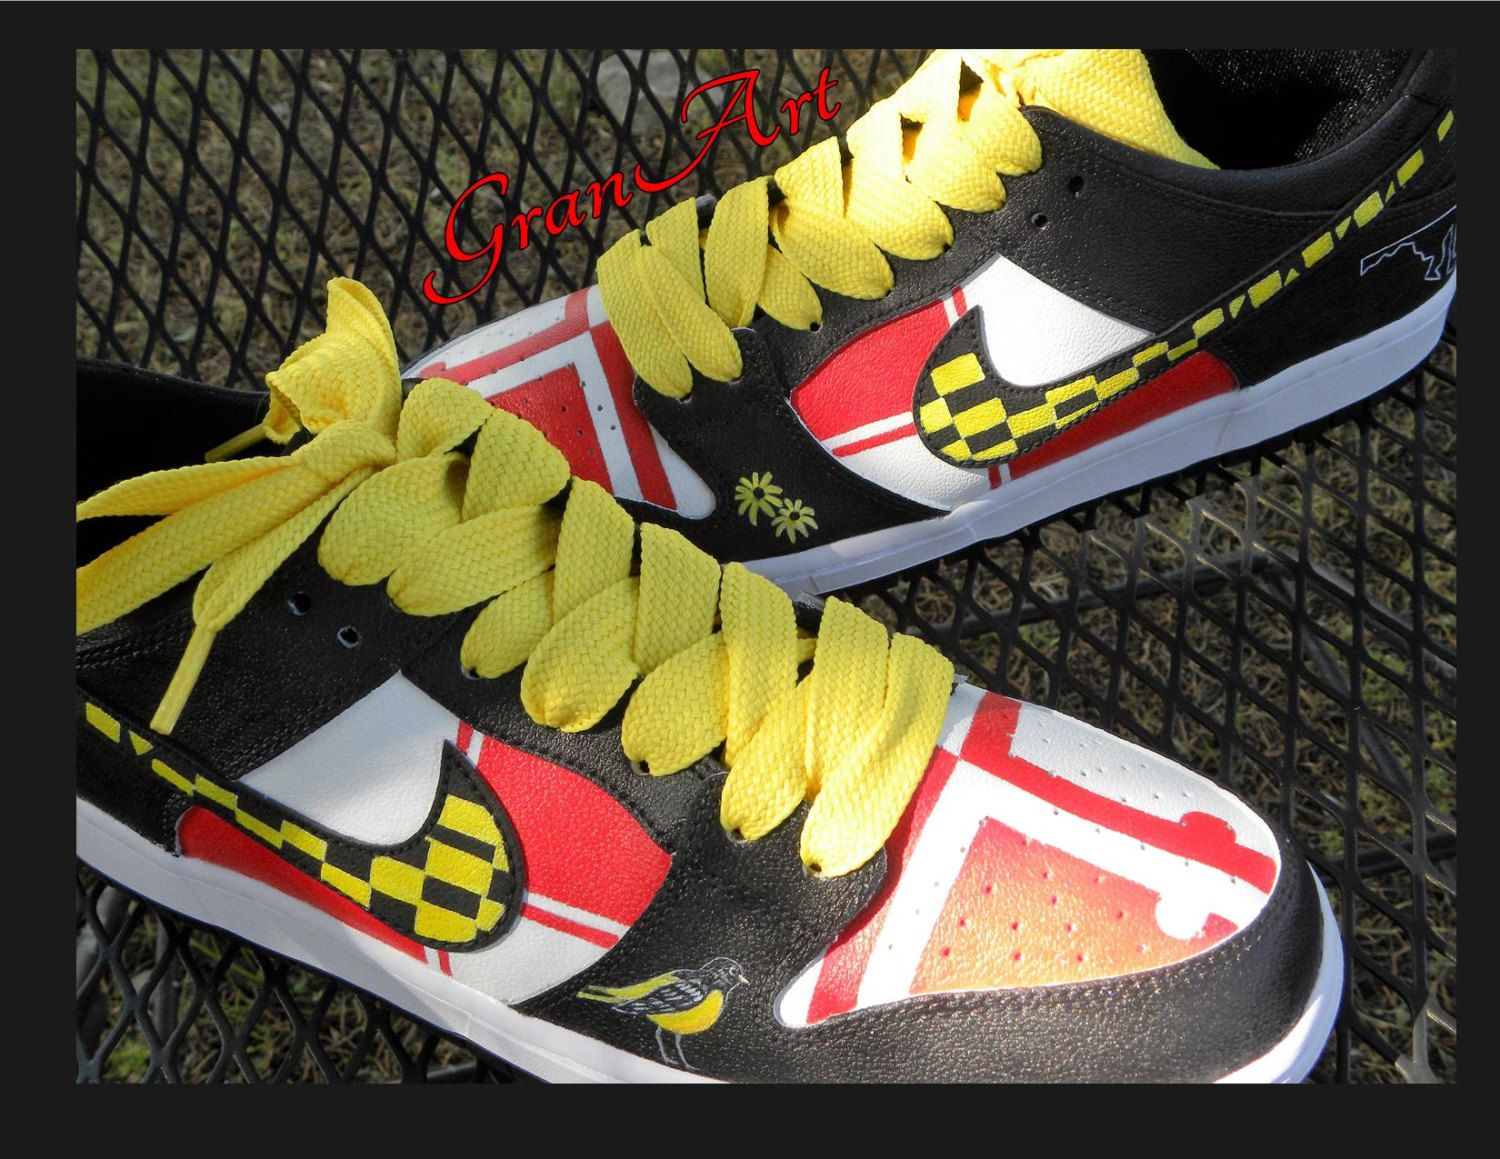 watch 11971 b28b9 Nike Custom Shoes MD, Nike SB Painted Shoes, Nike Shoes, Custom, Hand  Painted Shoes, Nike Custom Shoes, Maryland State Shoes, Nike SB Shoes by  GranArt on ...